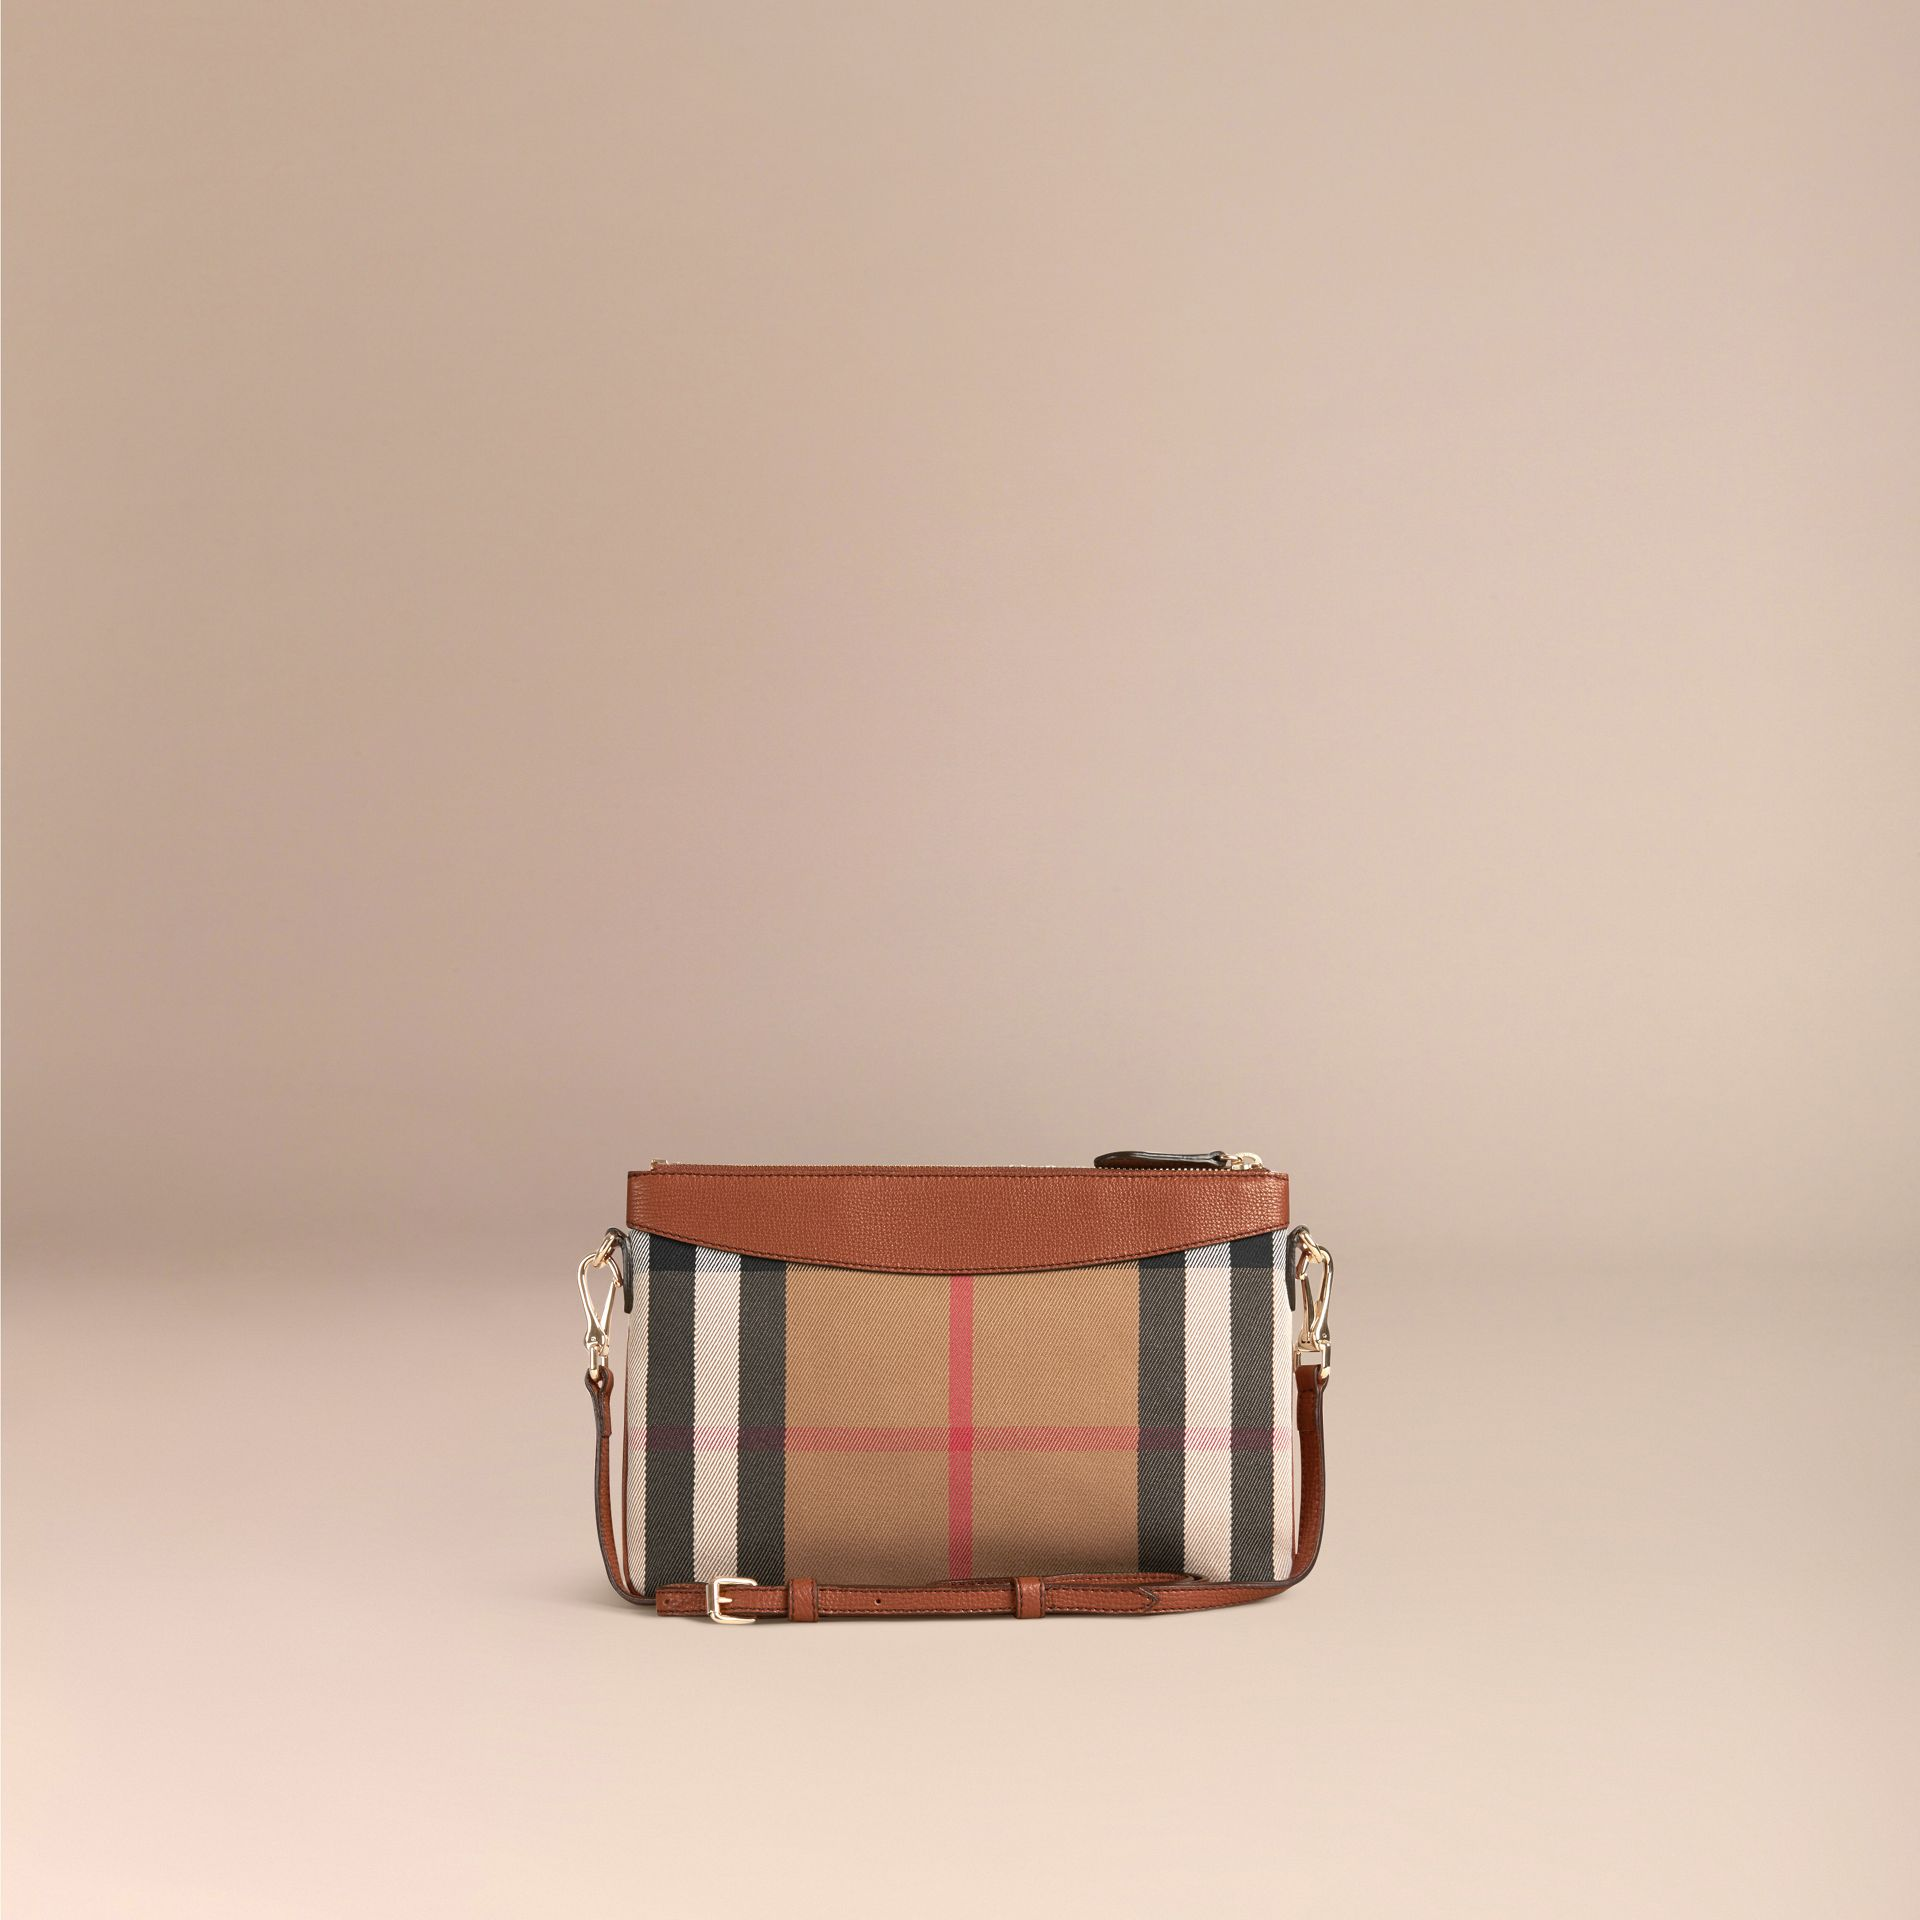 House Check and Leather Clutch Bag in Tan - Women | Burberry Canada - gallery image 4